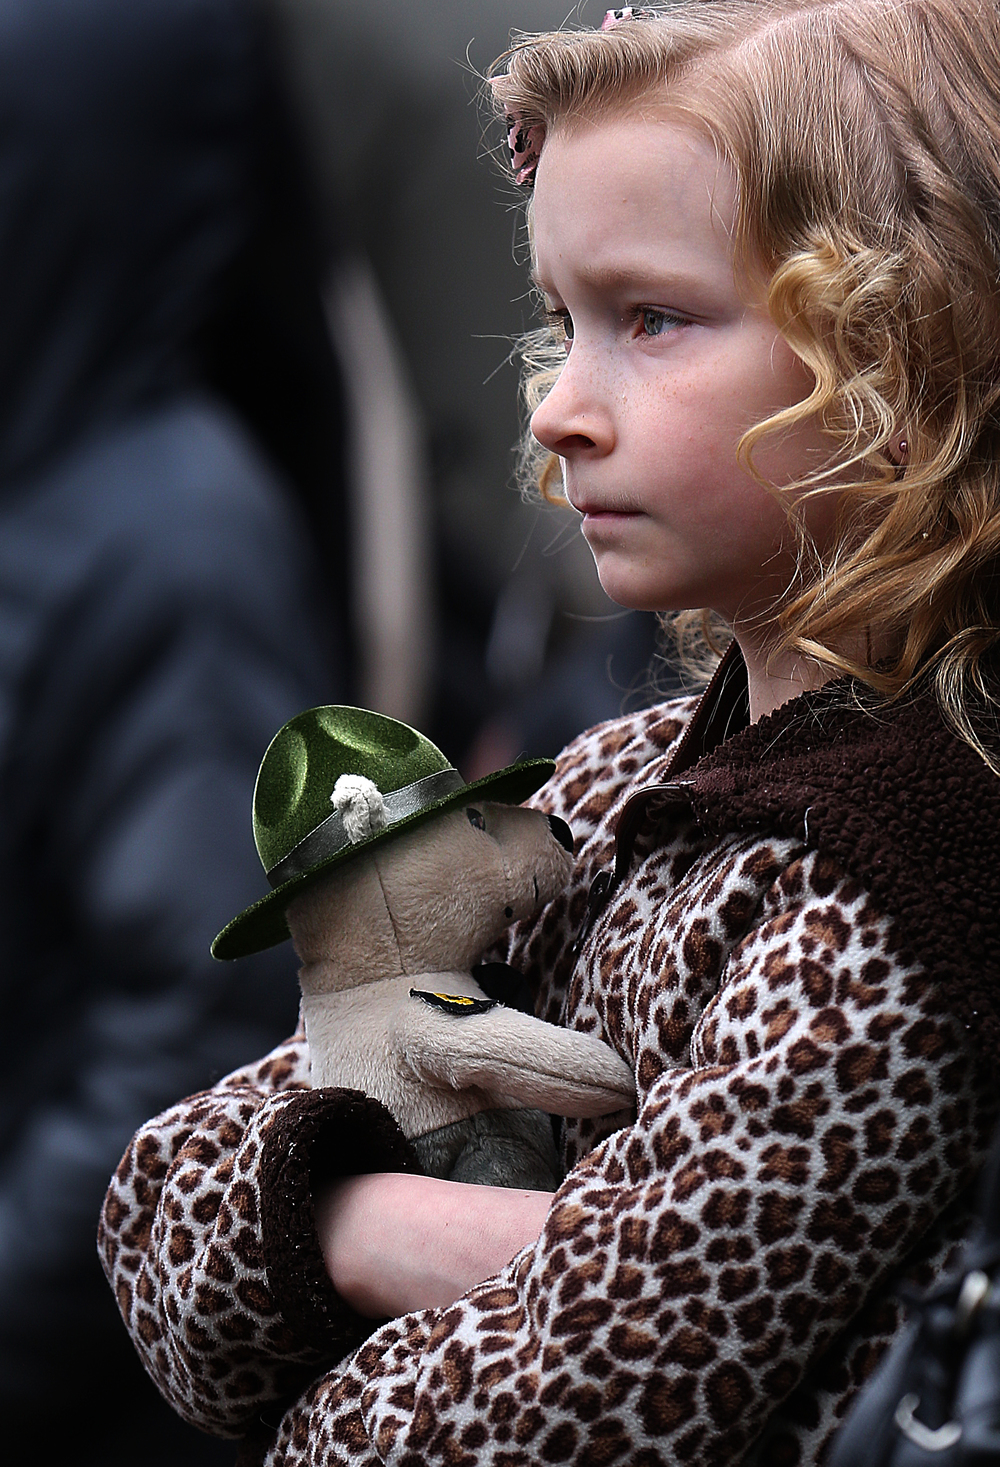 Alayna Ushman, 8, whose uncle Joshua Ushman was the President for Cadet Class 125, clutches an Illinois State Police teddy bear while watching the formal Bell Ceremony Friday morning.  David Spencer/The State Journal-Register